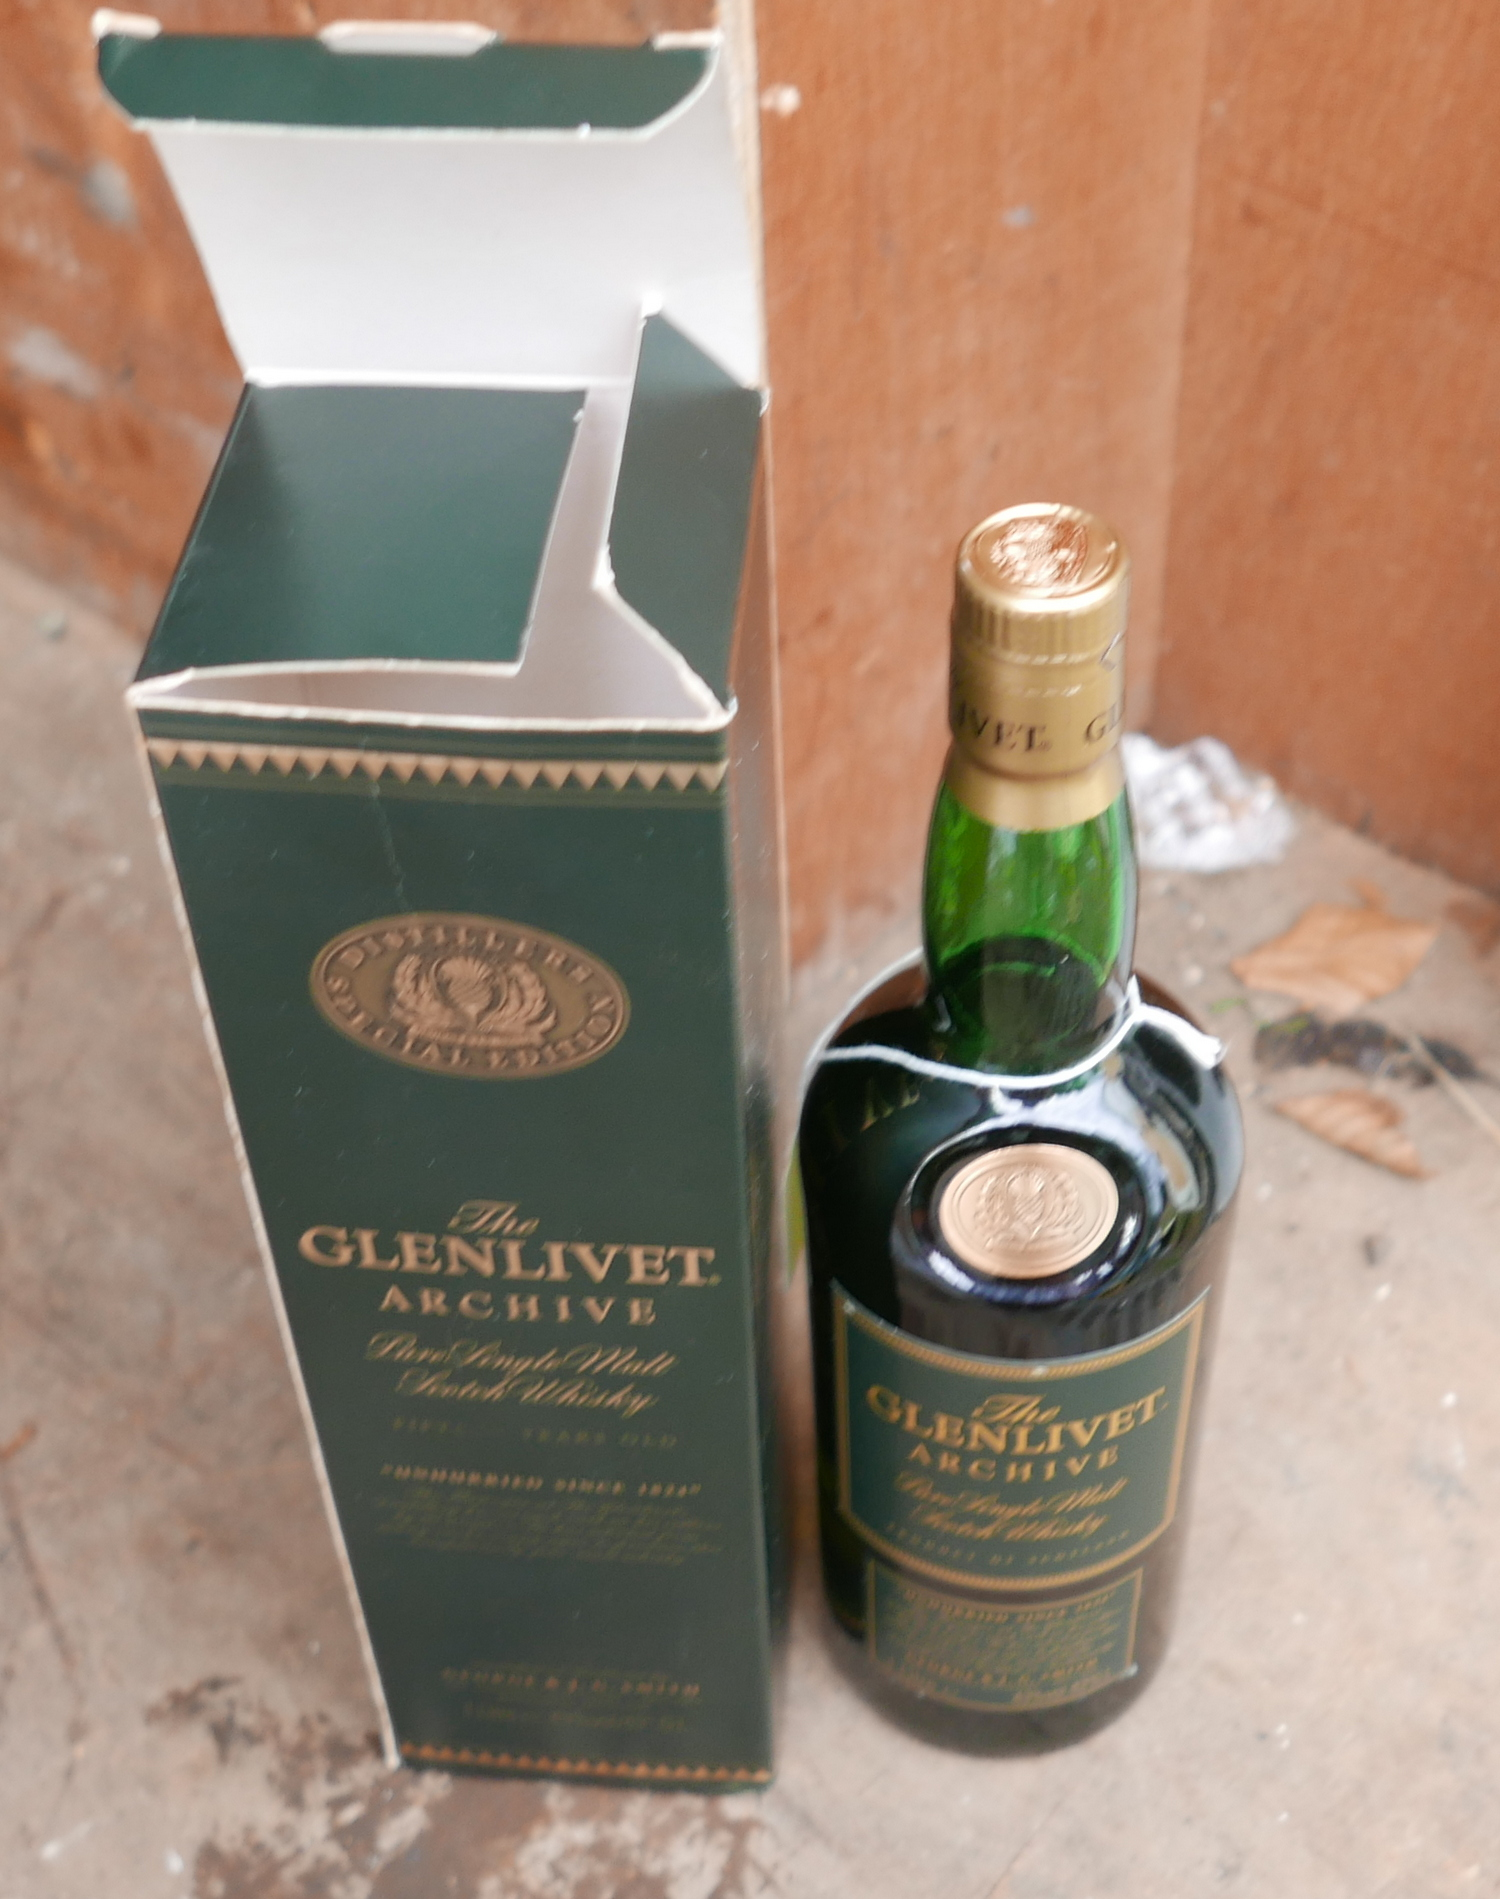 Lot 50V - Boxed Bottle of Glenlivet 15 year Old Whisky.